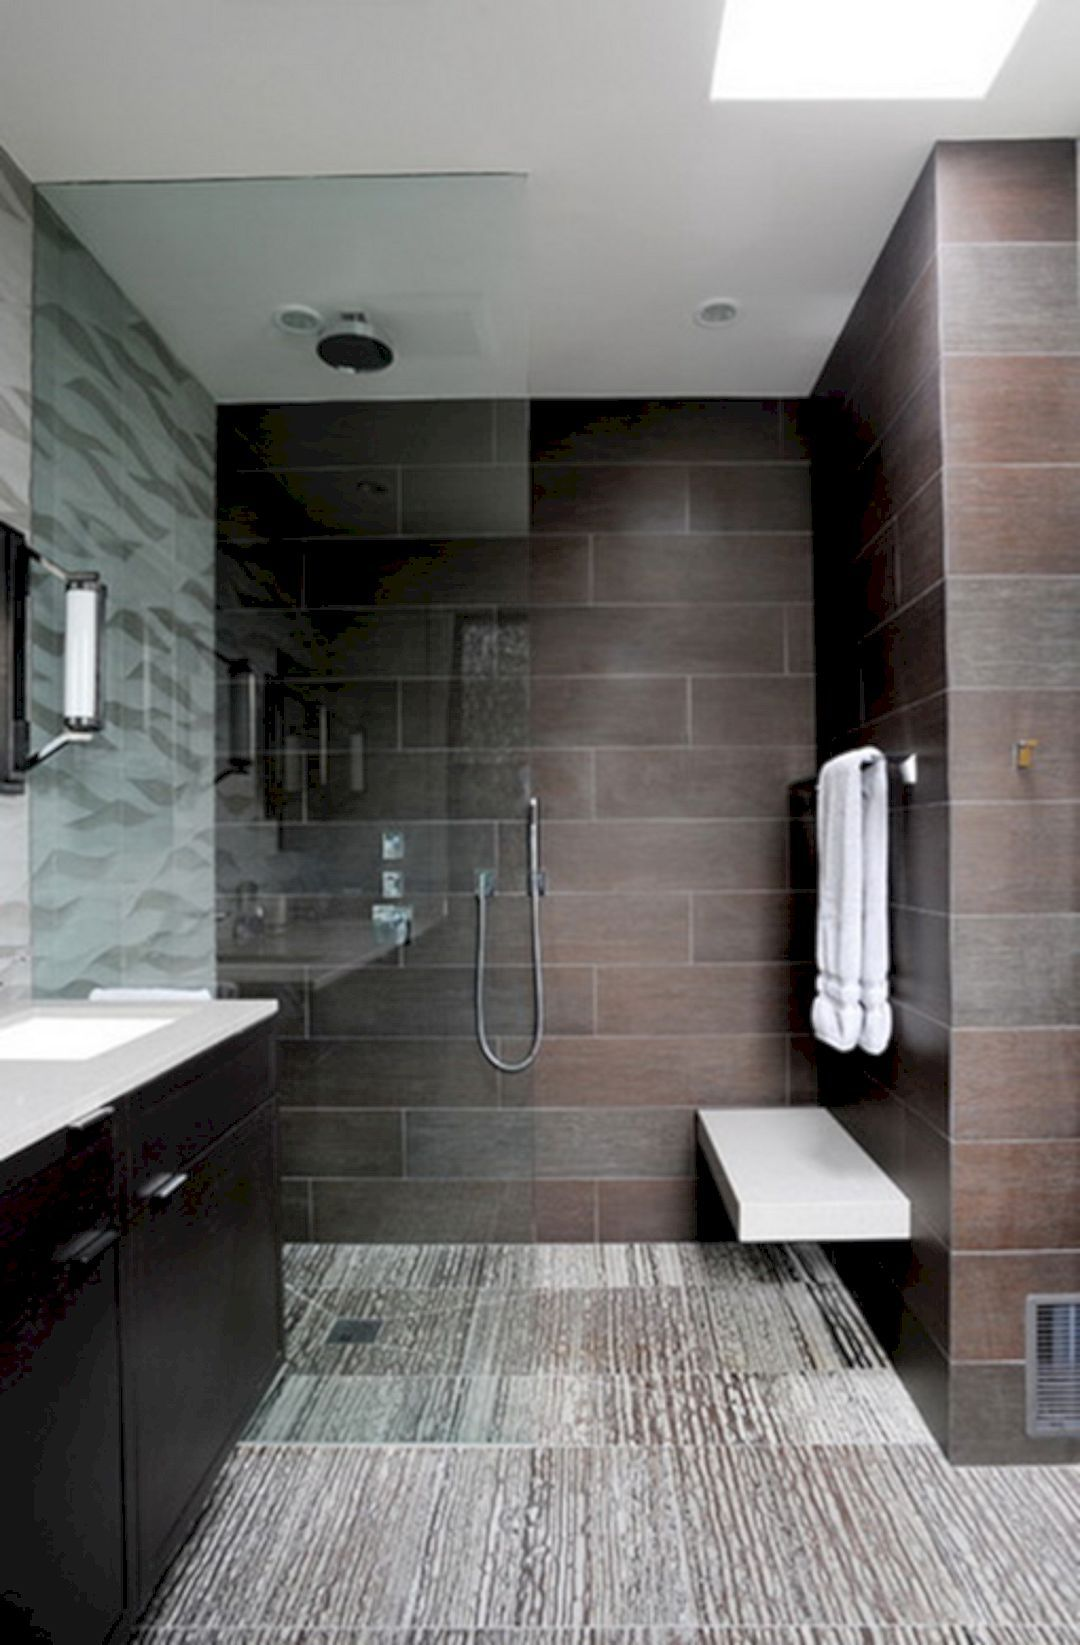 Stylish Modern Bathroom: 128 Best Designs Roundup on gray front stoop designs, gray wall designs, gray colored bathrooms, gray living room interior, gray tables, updated bathrooms designs, master bedroom designs, gray color designs, gray painted bathrooms, gray office design, gray bedroom, gray painting, gray marble bathrooms, gray closets, gray room designs, gray interior designs, gray foyer designs, gray photography, gray bath, gray living room decorating,